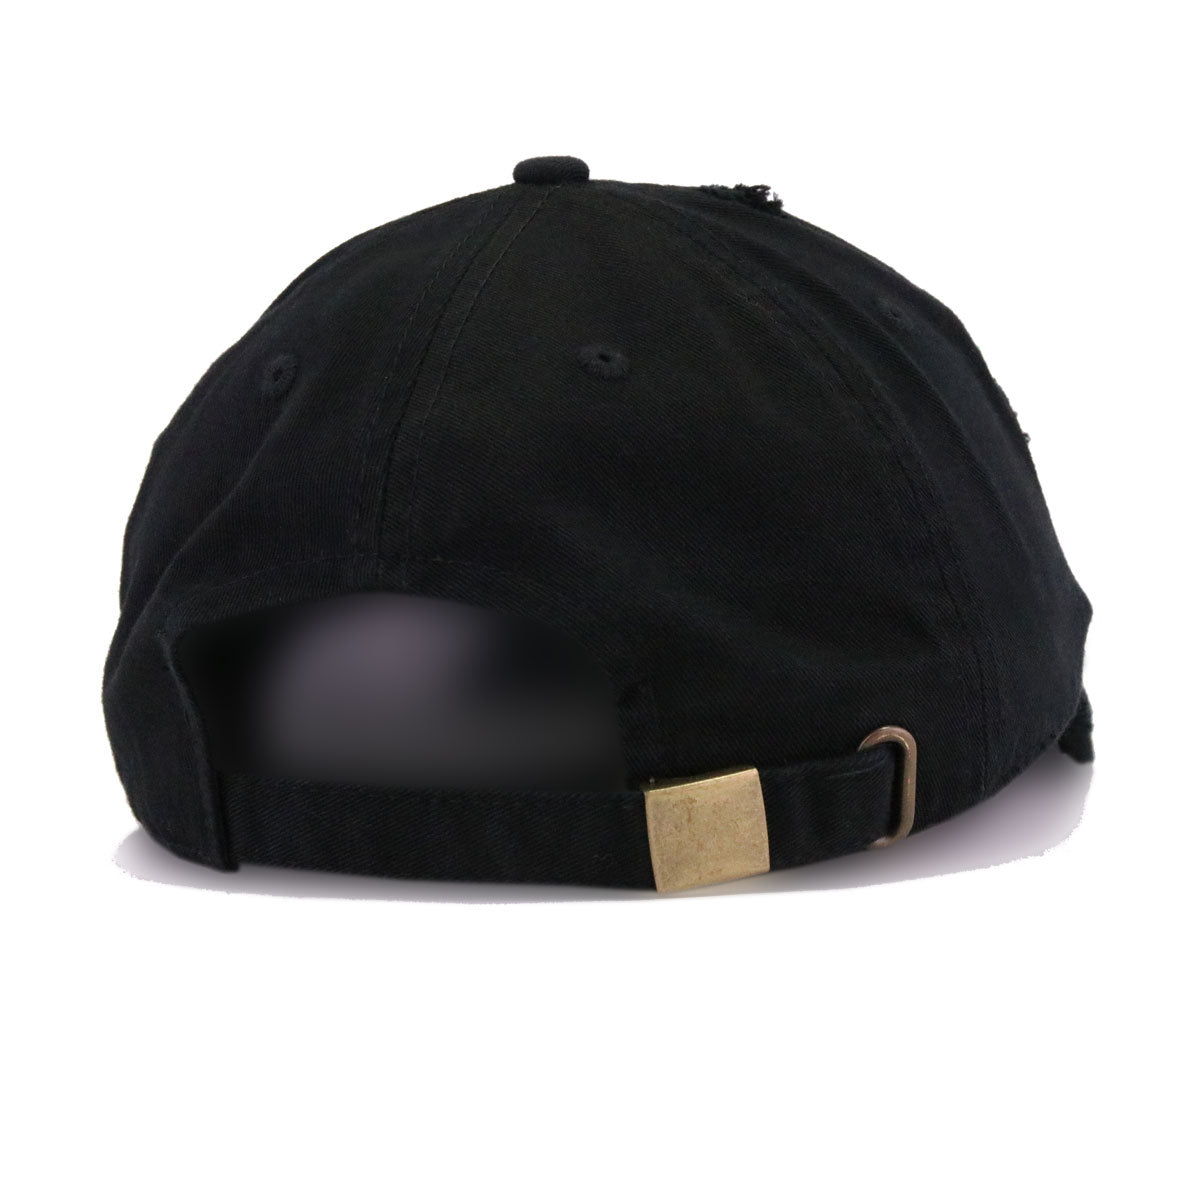 Distressed Black KBEthos Vintage Dad Hat